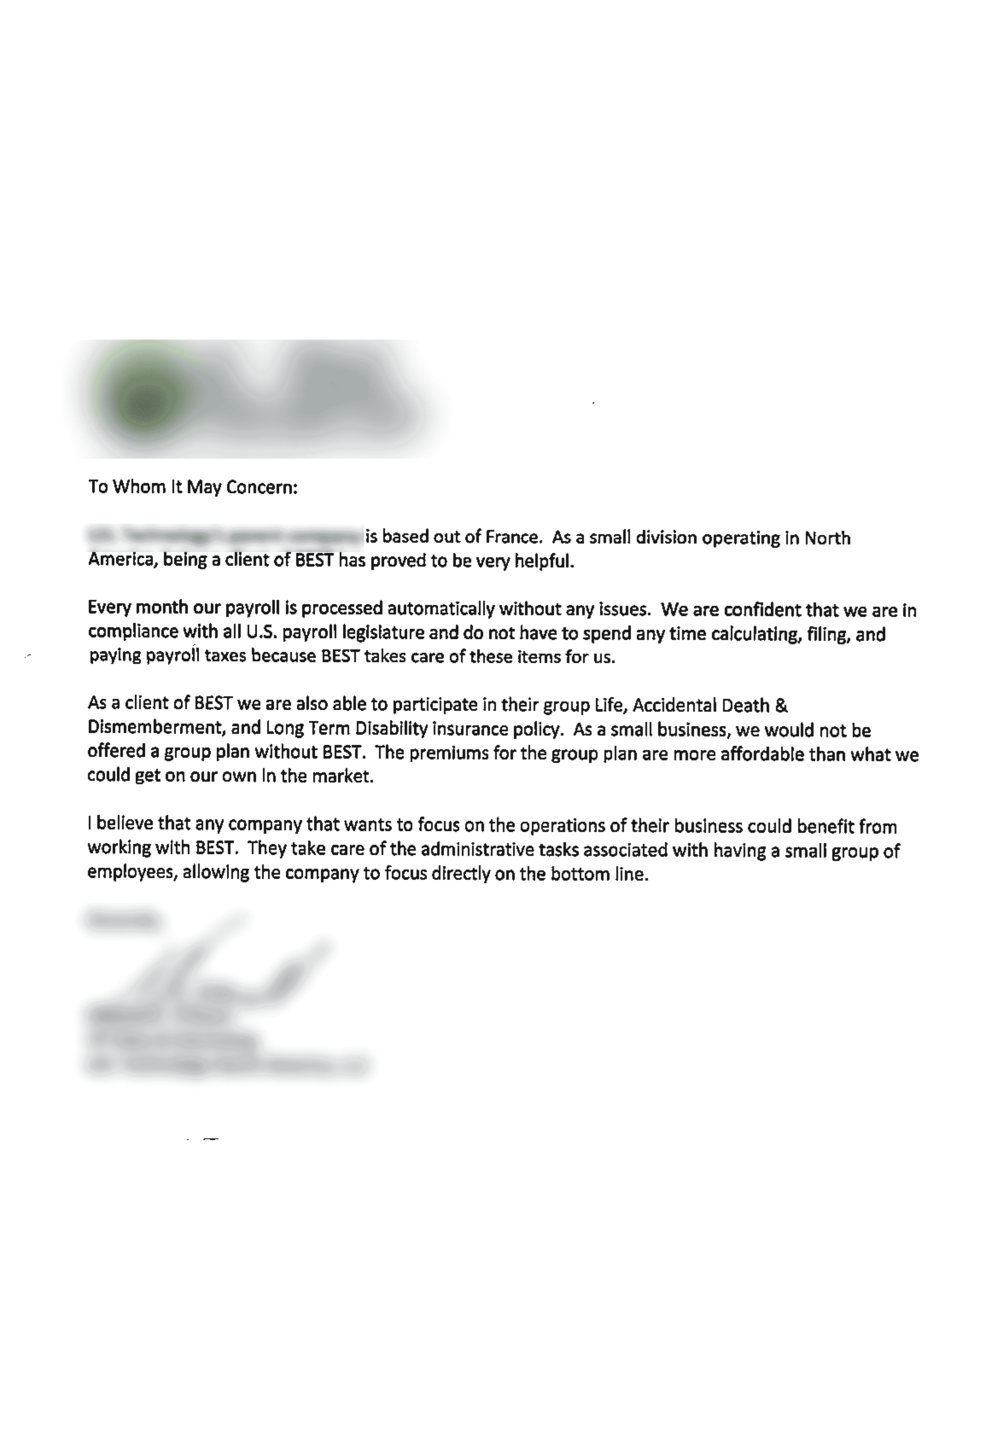 LDL-Signed-Reference-Letter.png